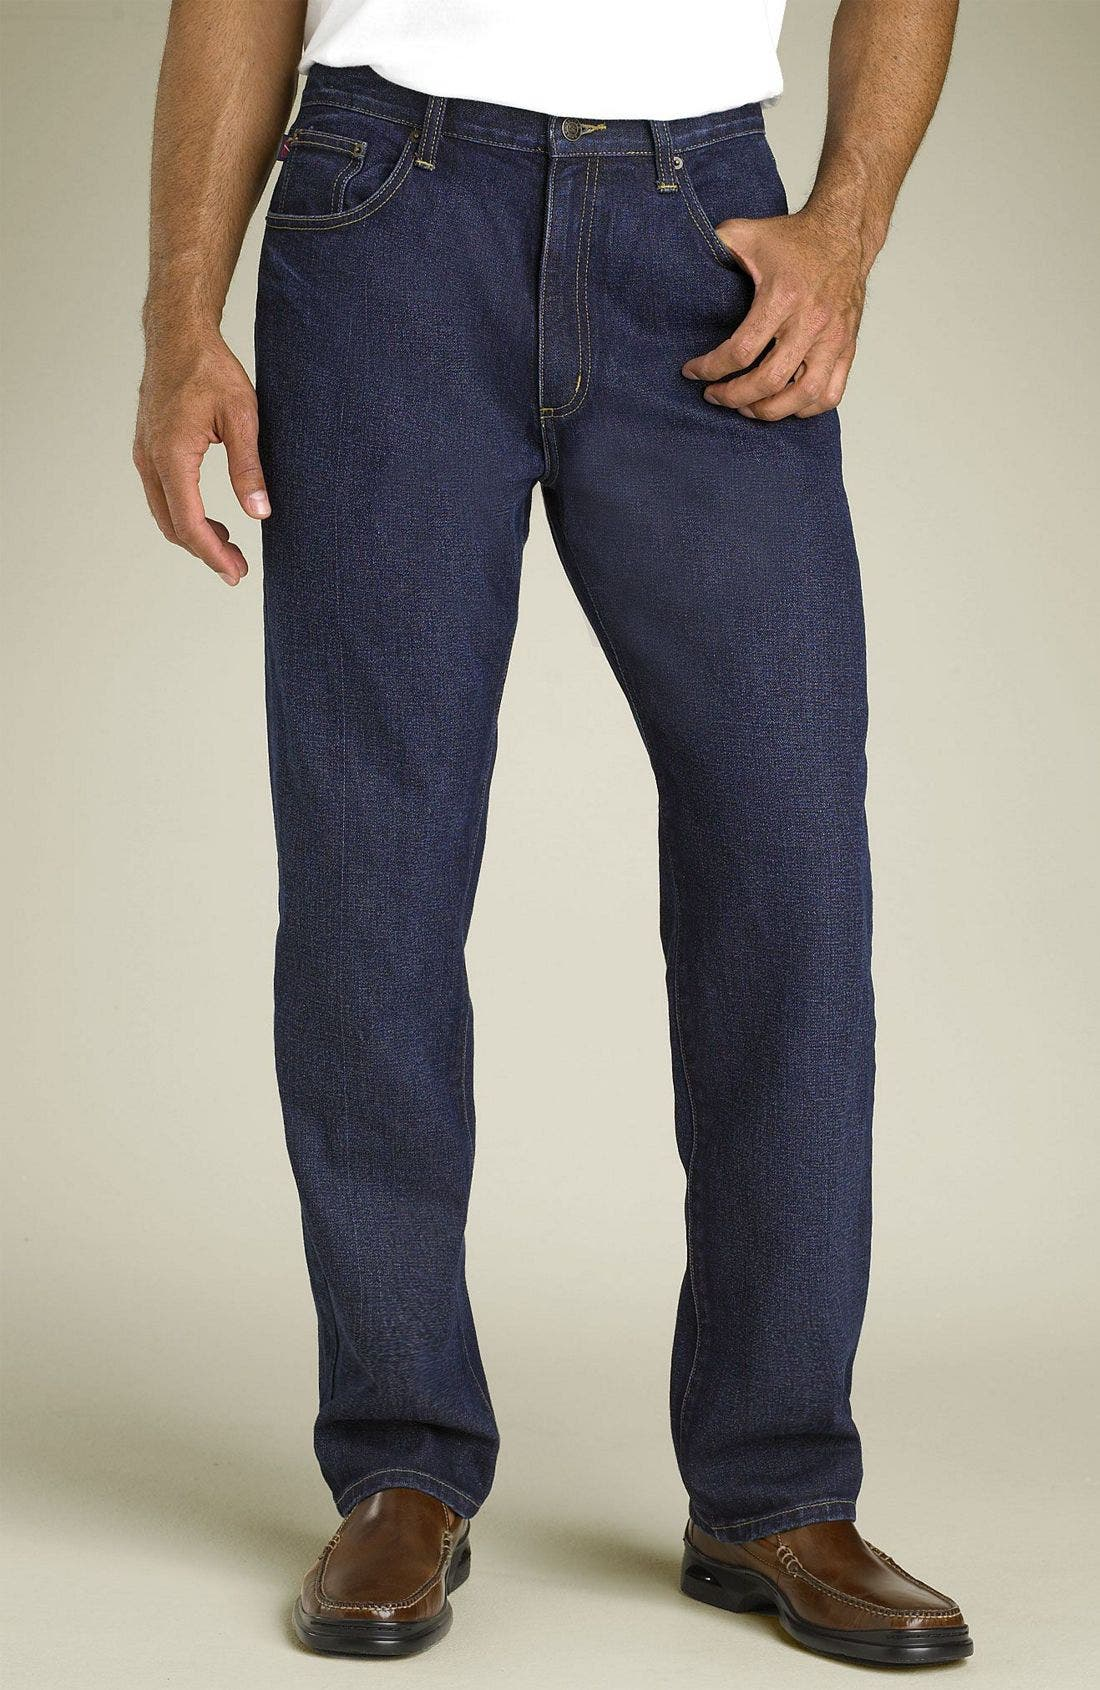 Classic Five Pocket Straight Leg Jeans,                             Main thumbnail 1, color,                             461